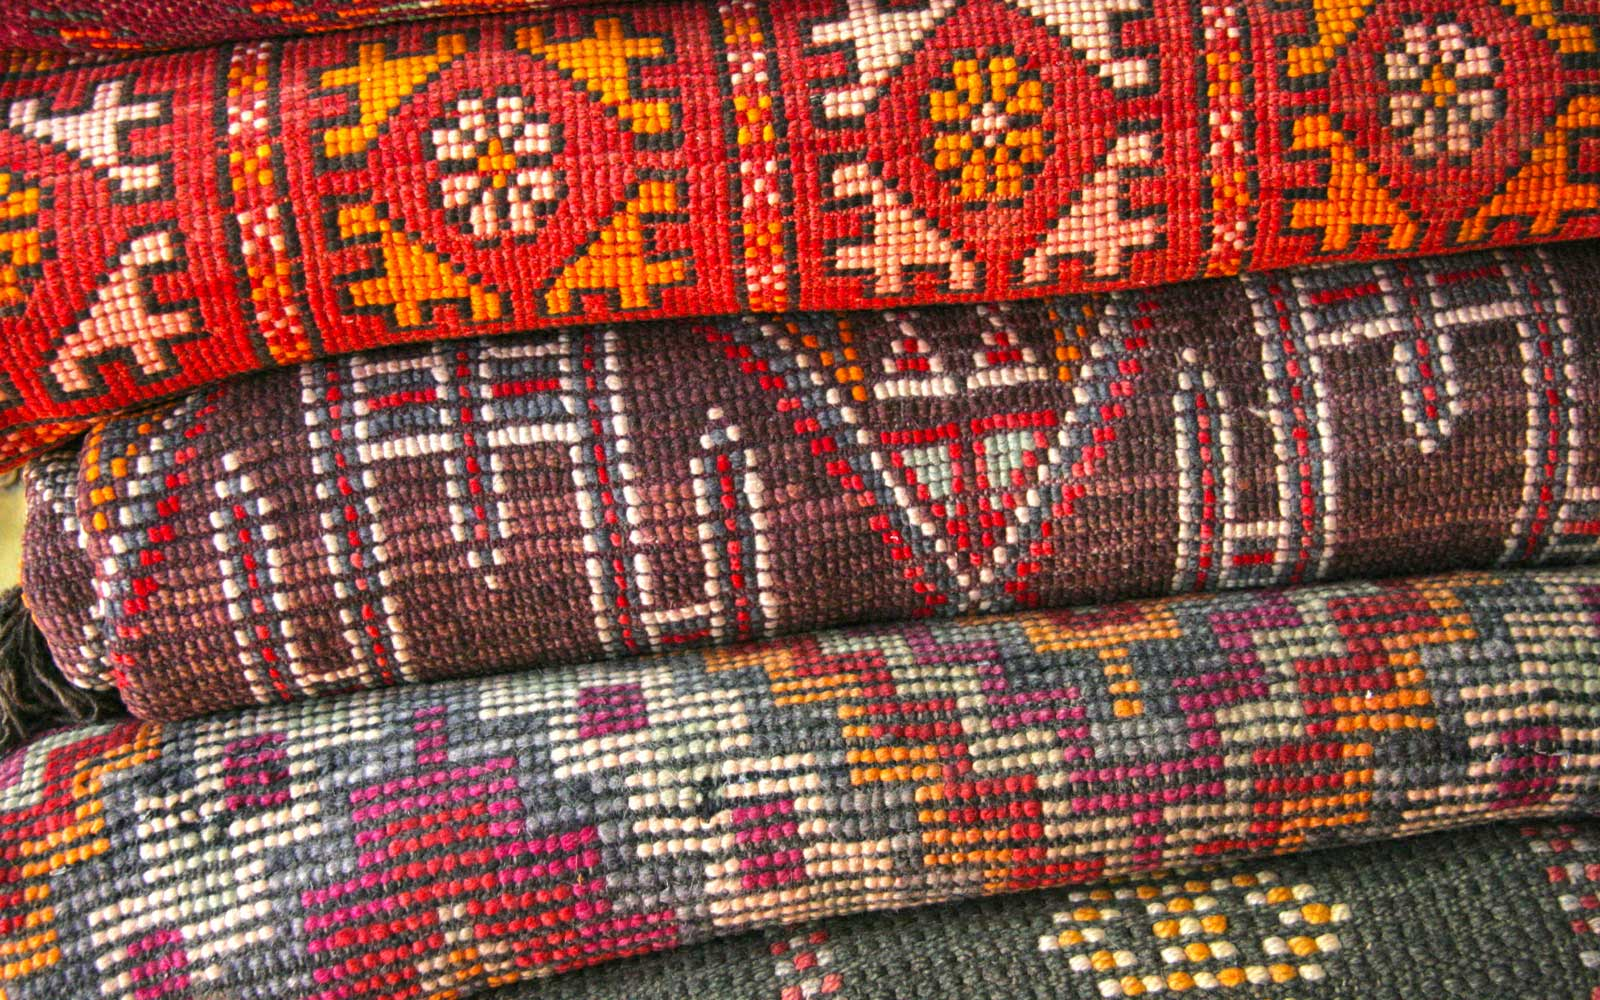 Rugs for sale in Marrakech, Morocco